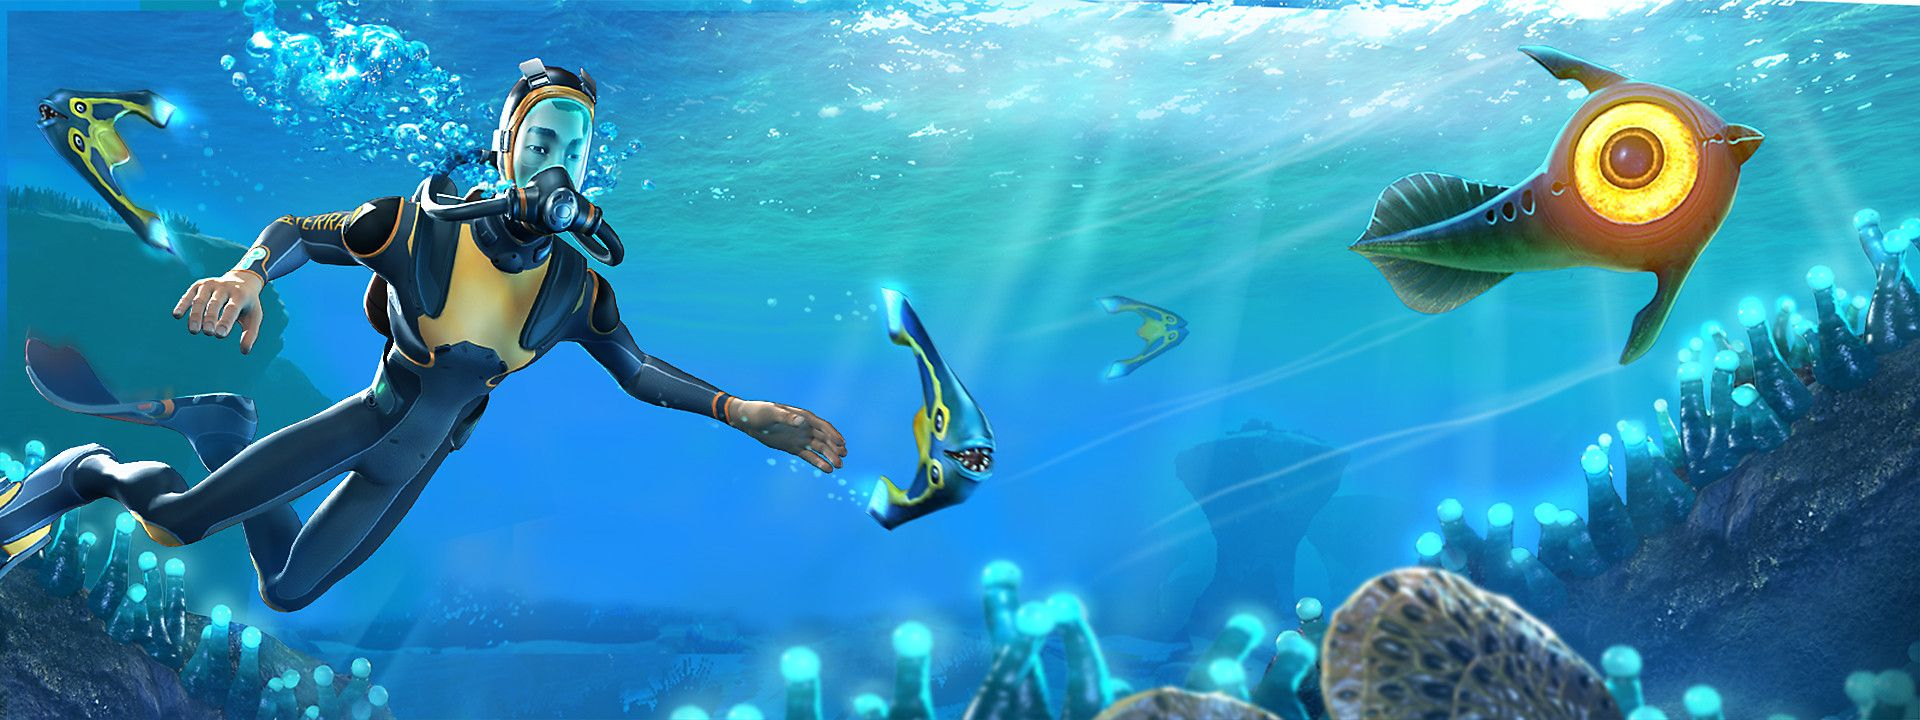 14 Of Awesome Subnautica Phone Wallpaper 2k Phone Wallpaper Free Desktop Wallpaper World Wallpaper